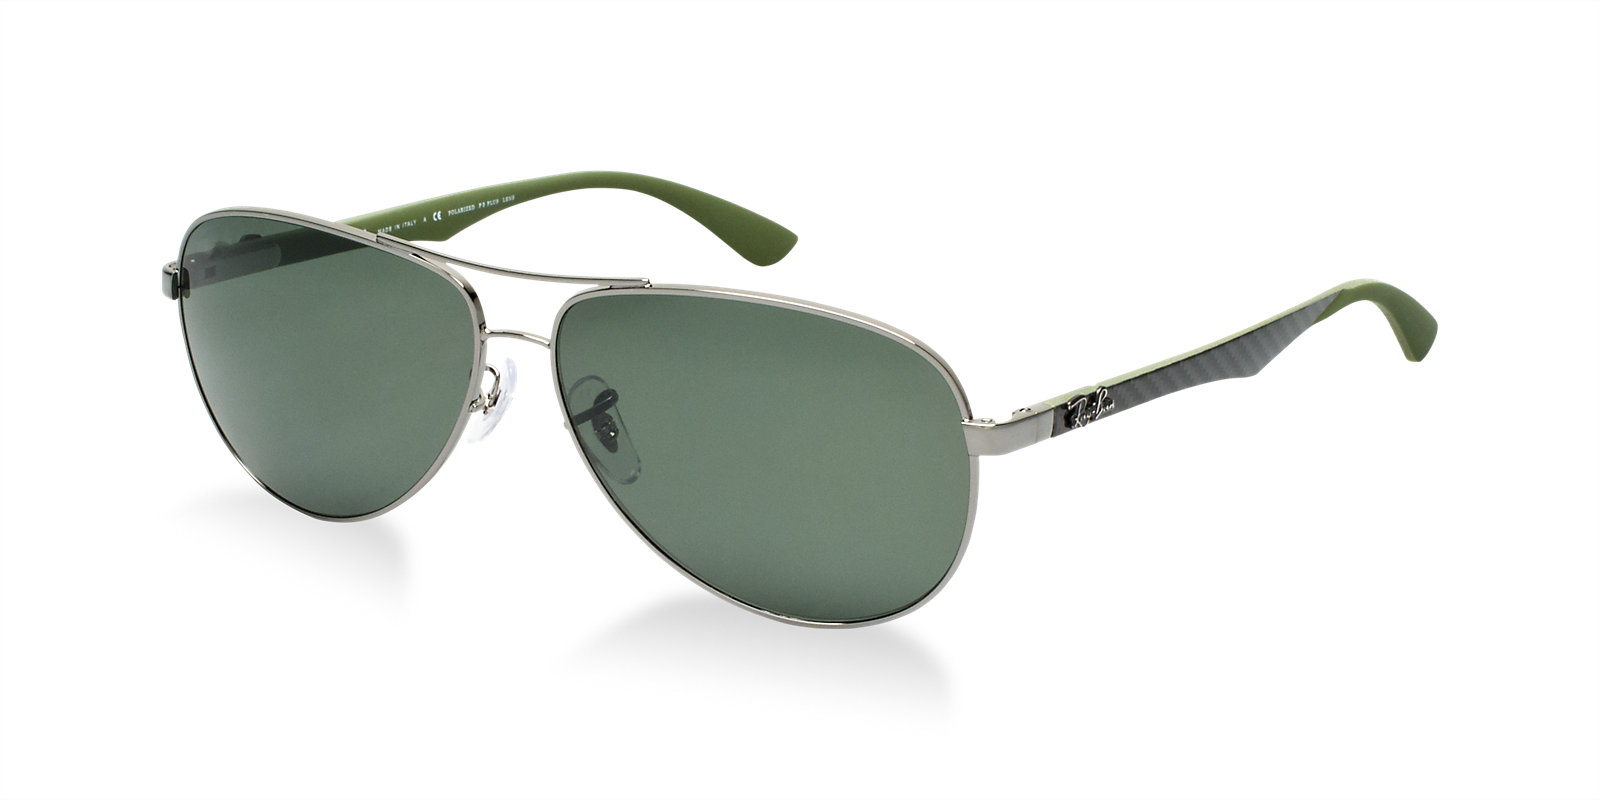 Ray-Ban-Sunglasses-for-Men (13)